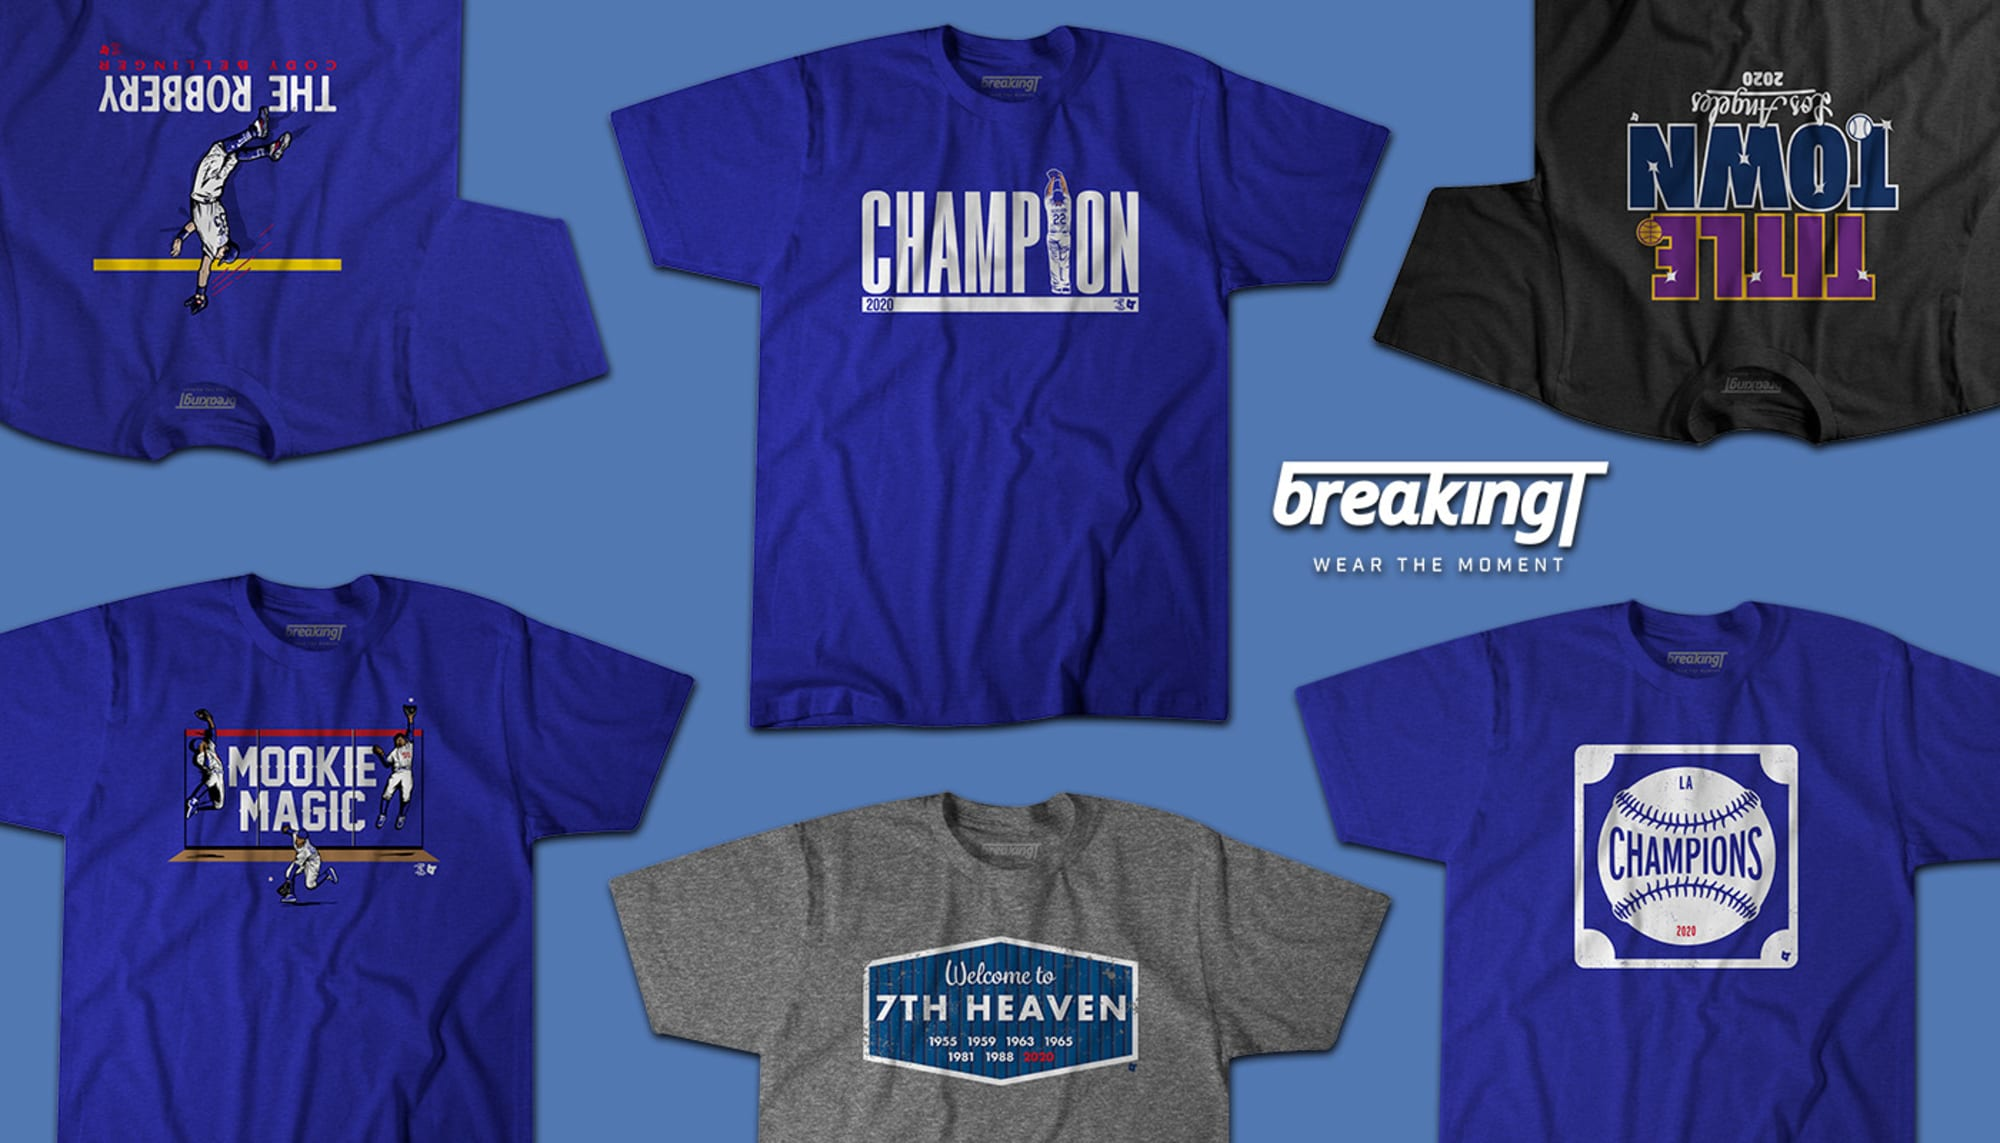 The Los Angeles Dodgers are World Series Champs. Time to gear up.